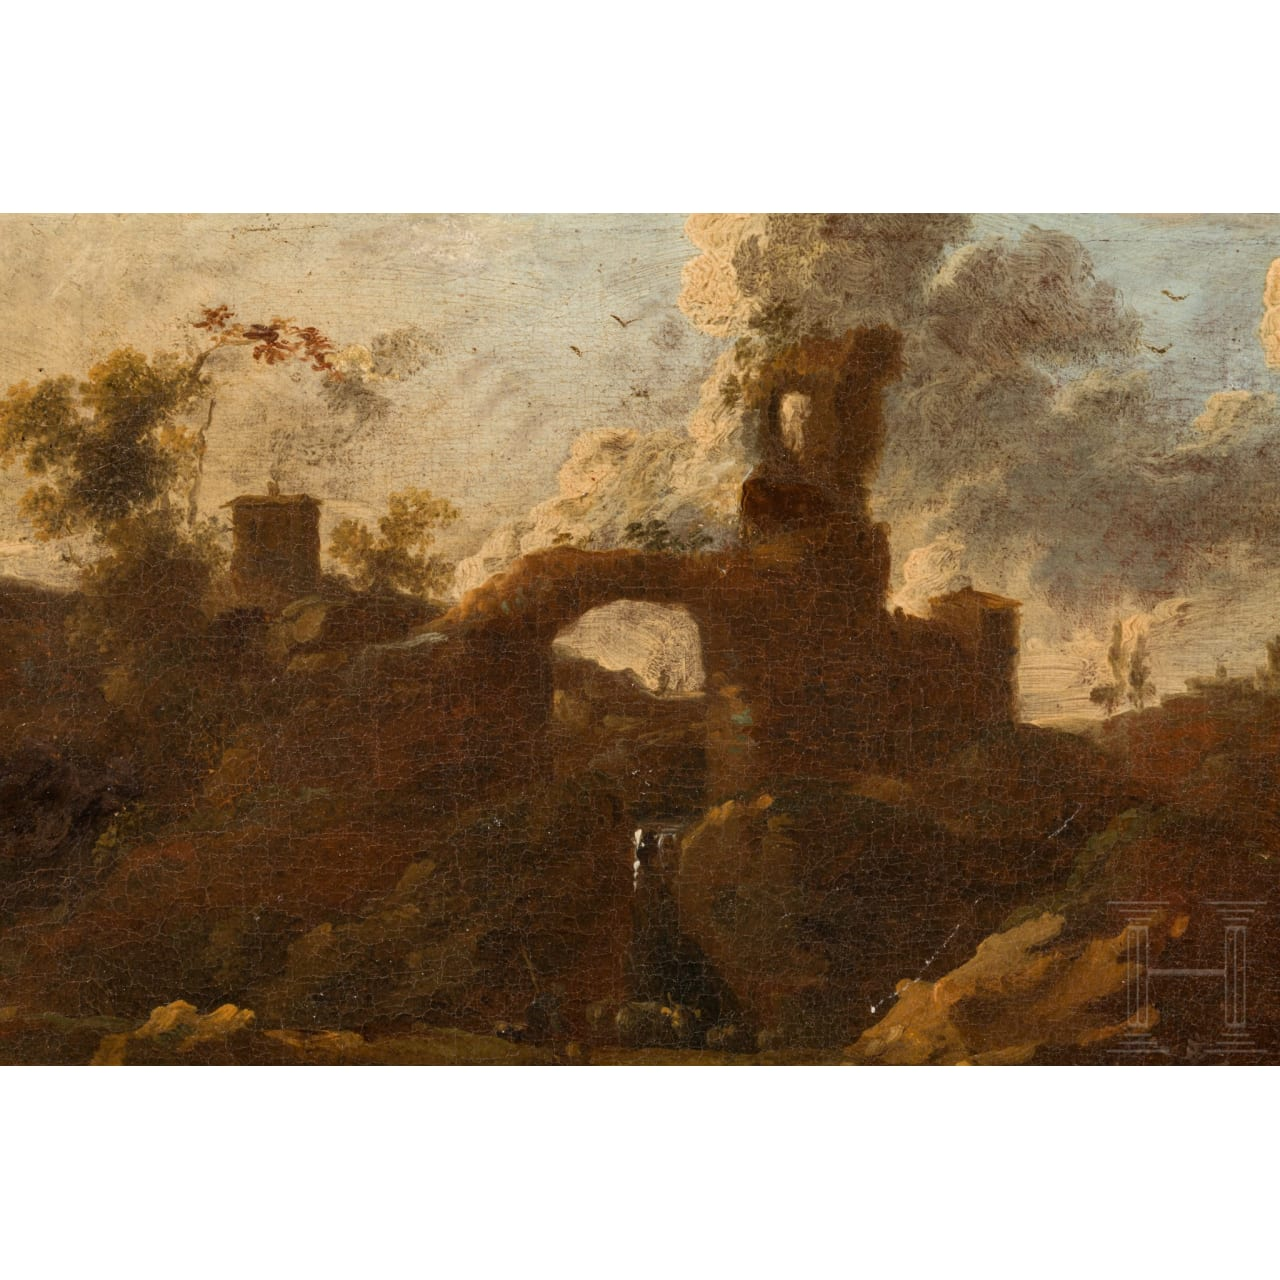 An oil painting - Herders in rocky Italian landscape, in the manner of Rosa da Tivoli, late 17th century